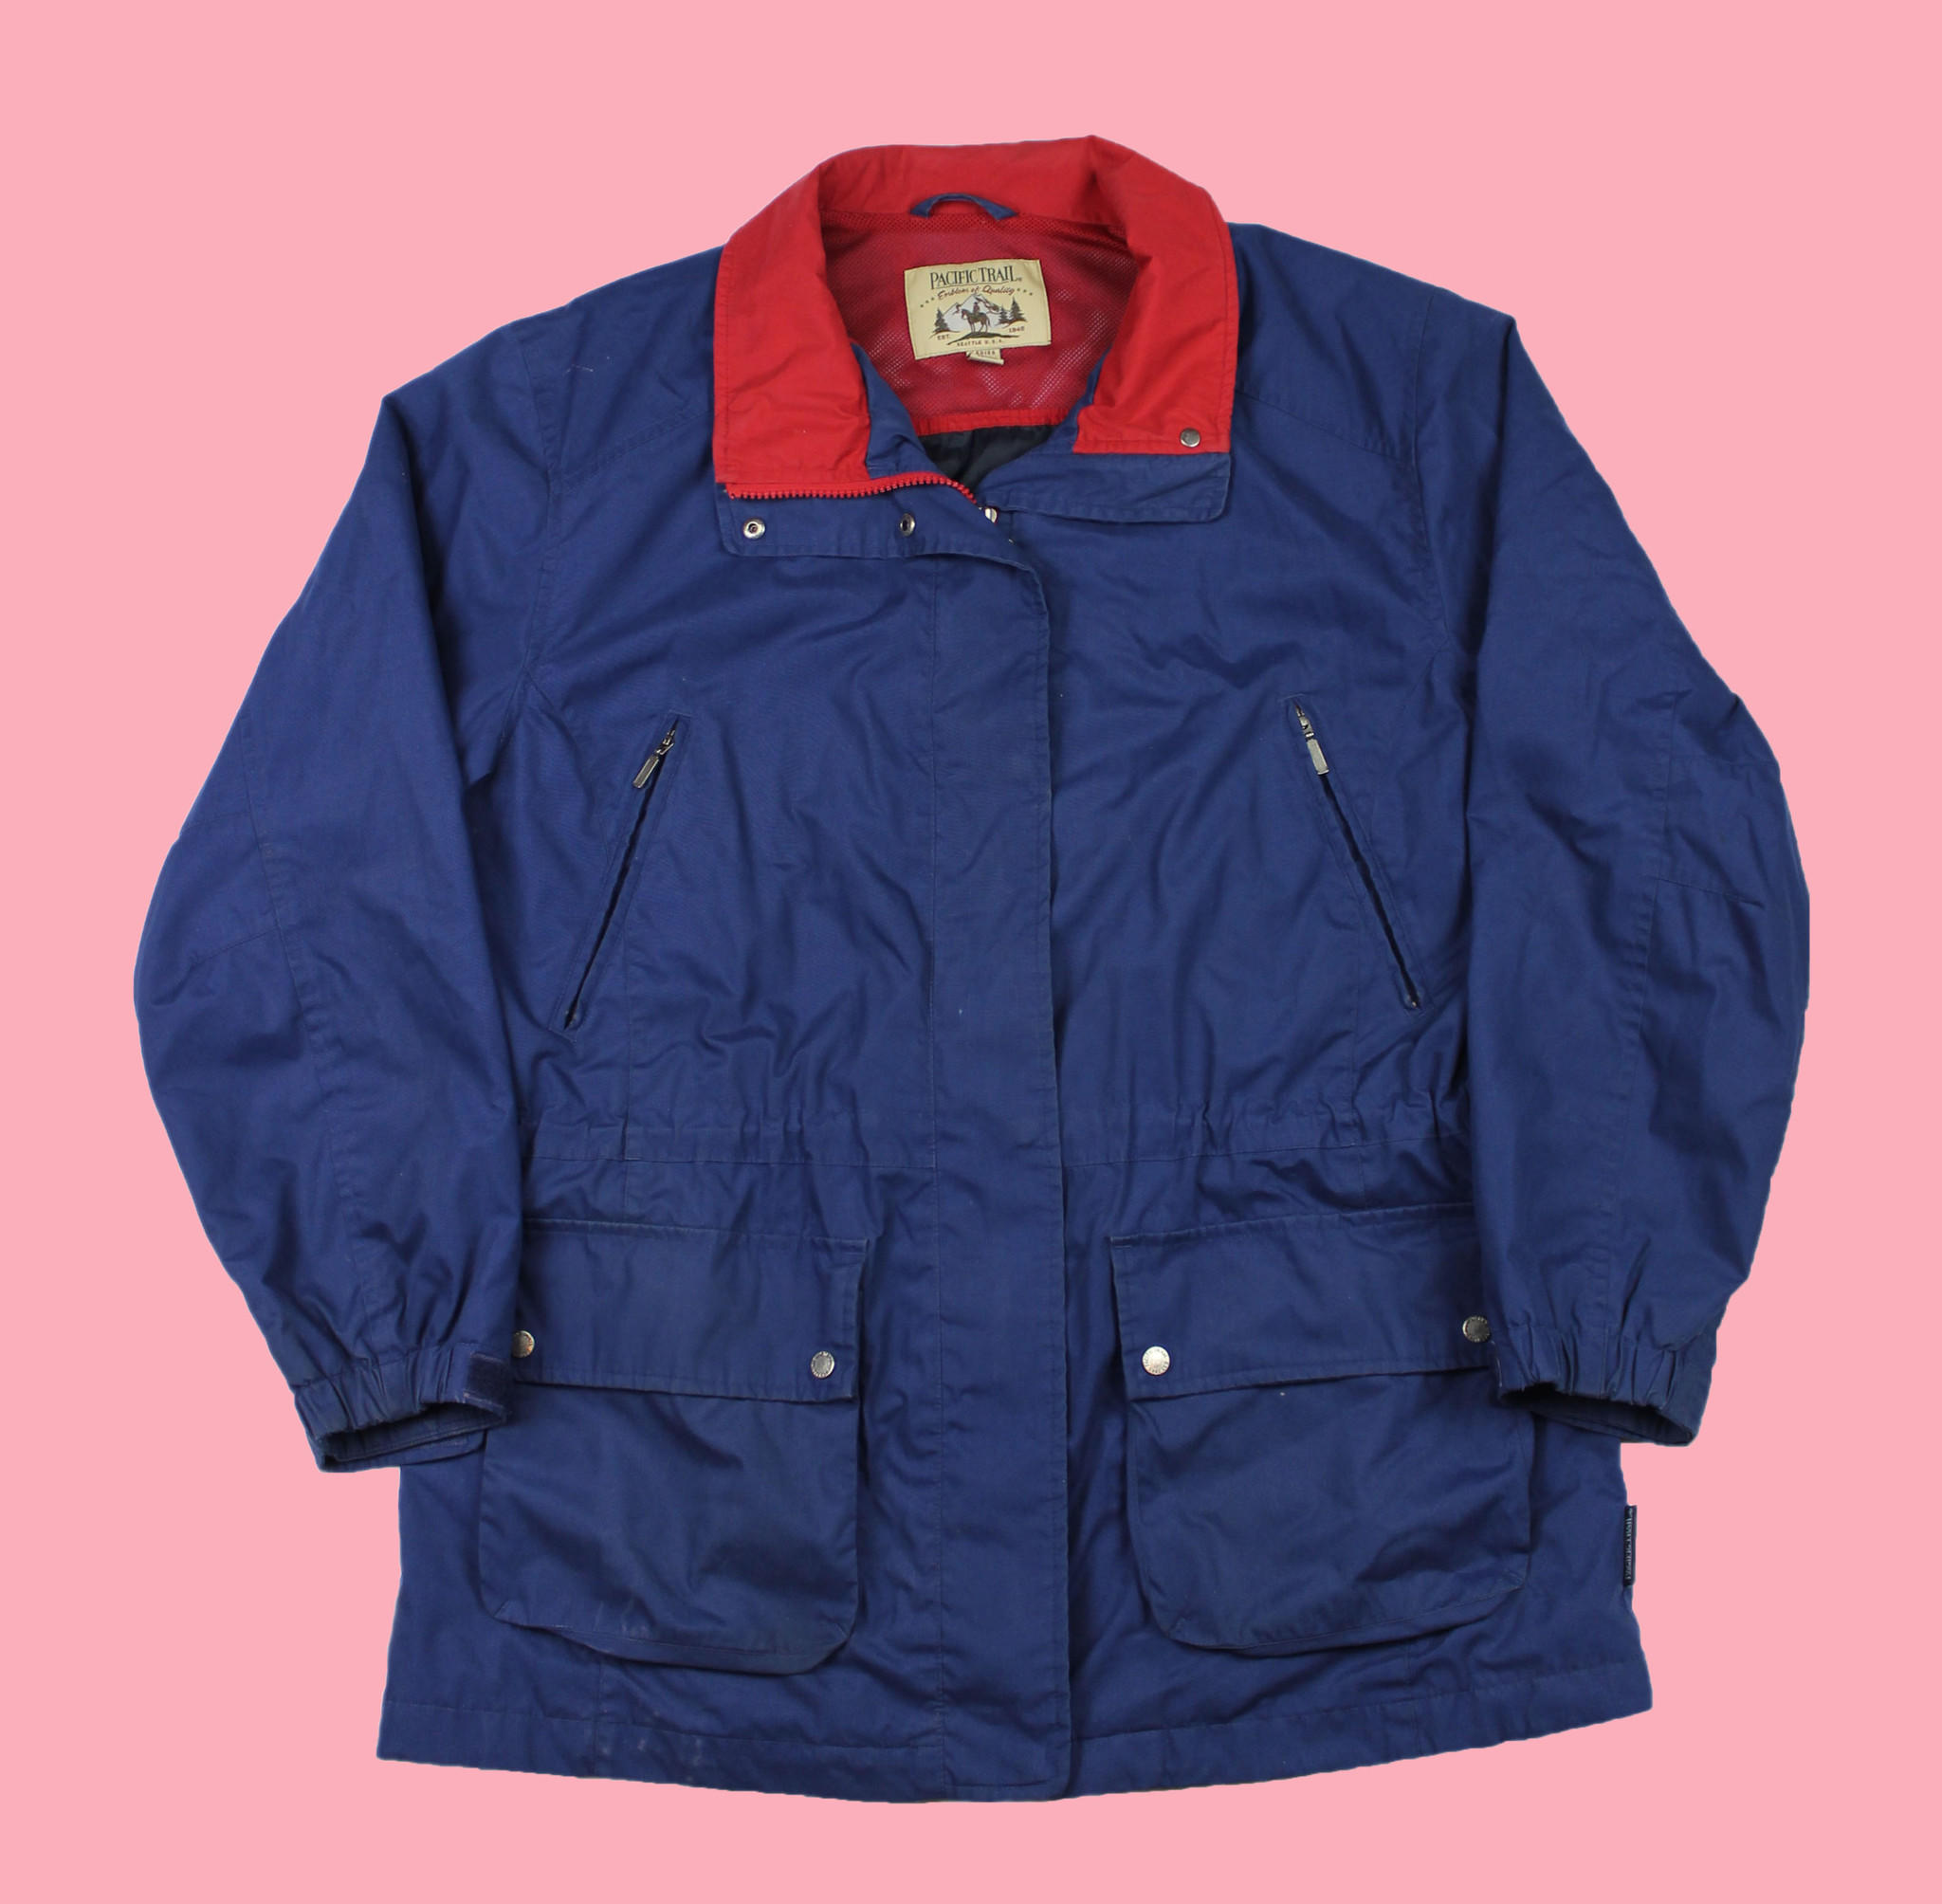 Pacific trail coats for women